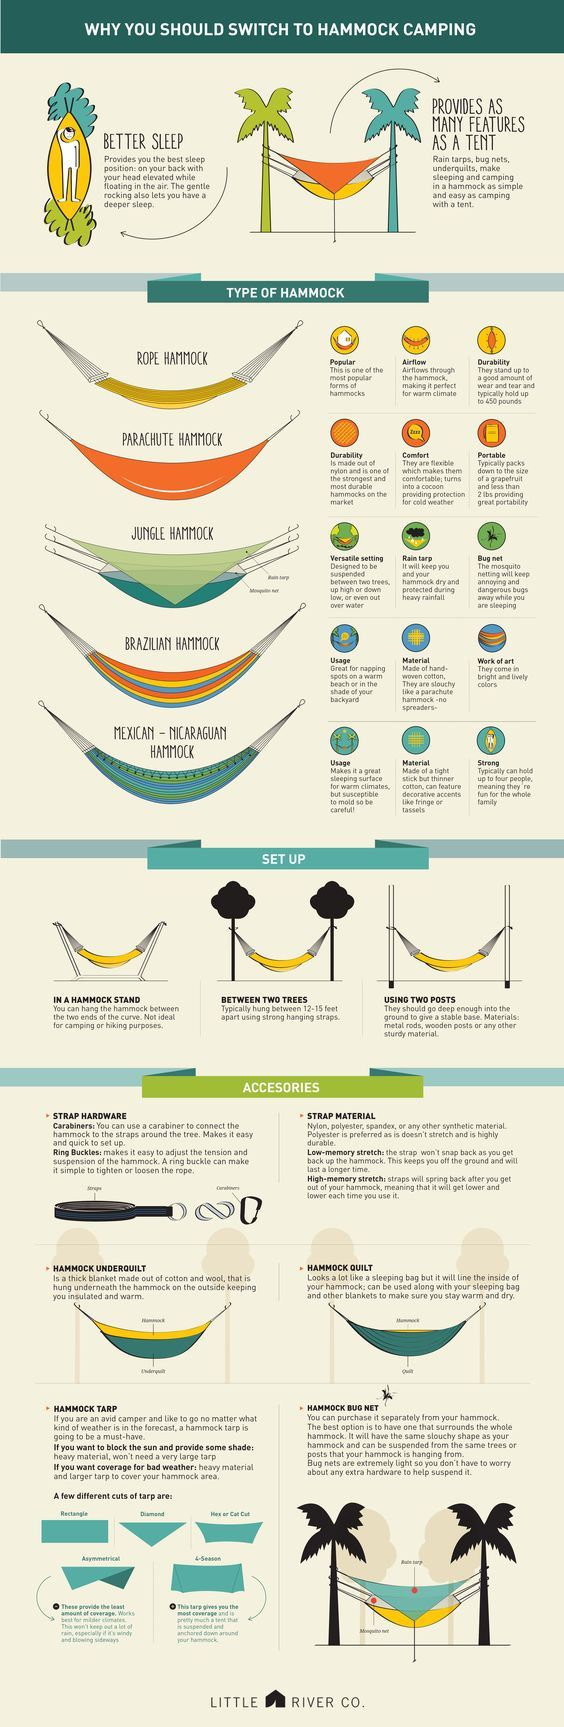 Different Types Of Hammocks |Useful Hammock Accessories – There are a variety of different types of hammocks and useful hammock accessories for you to use.